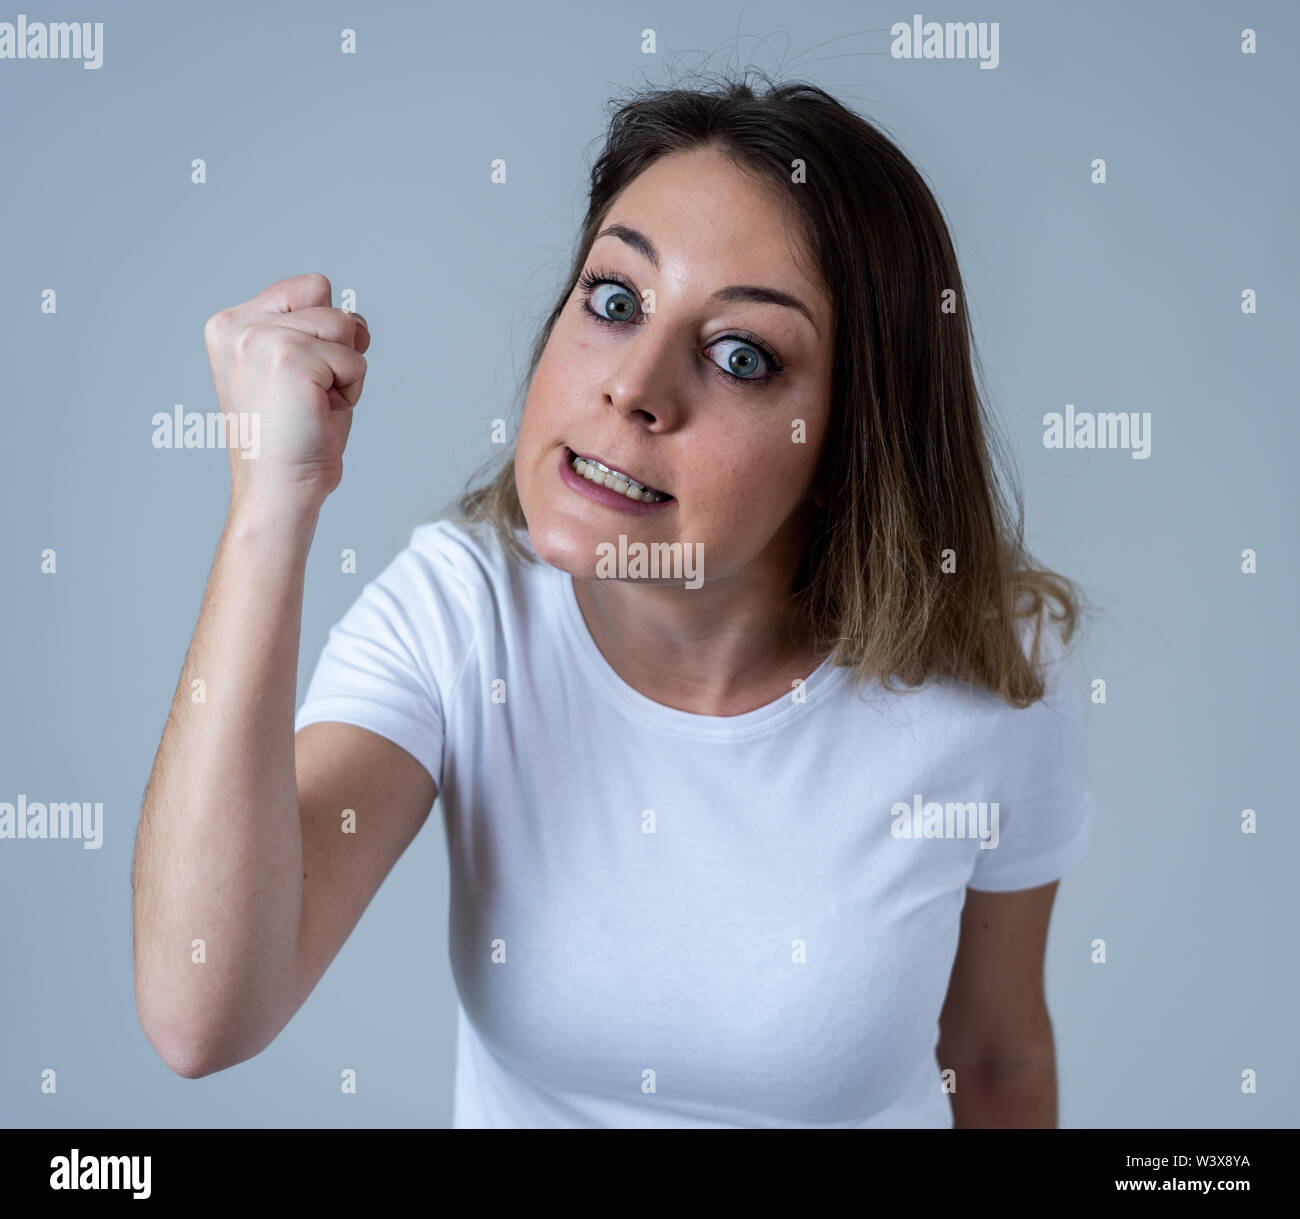 Close up portrait of young attractive caucasian woman with an angry face. Looking mad and crazy shouting and making furious gestures. Isolated on neut - Stock Image